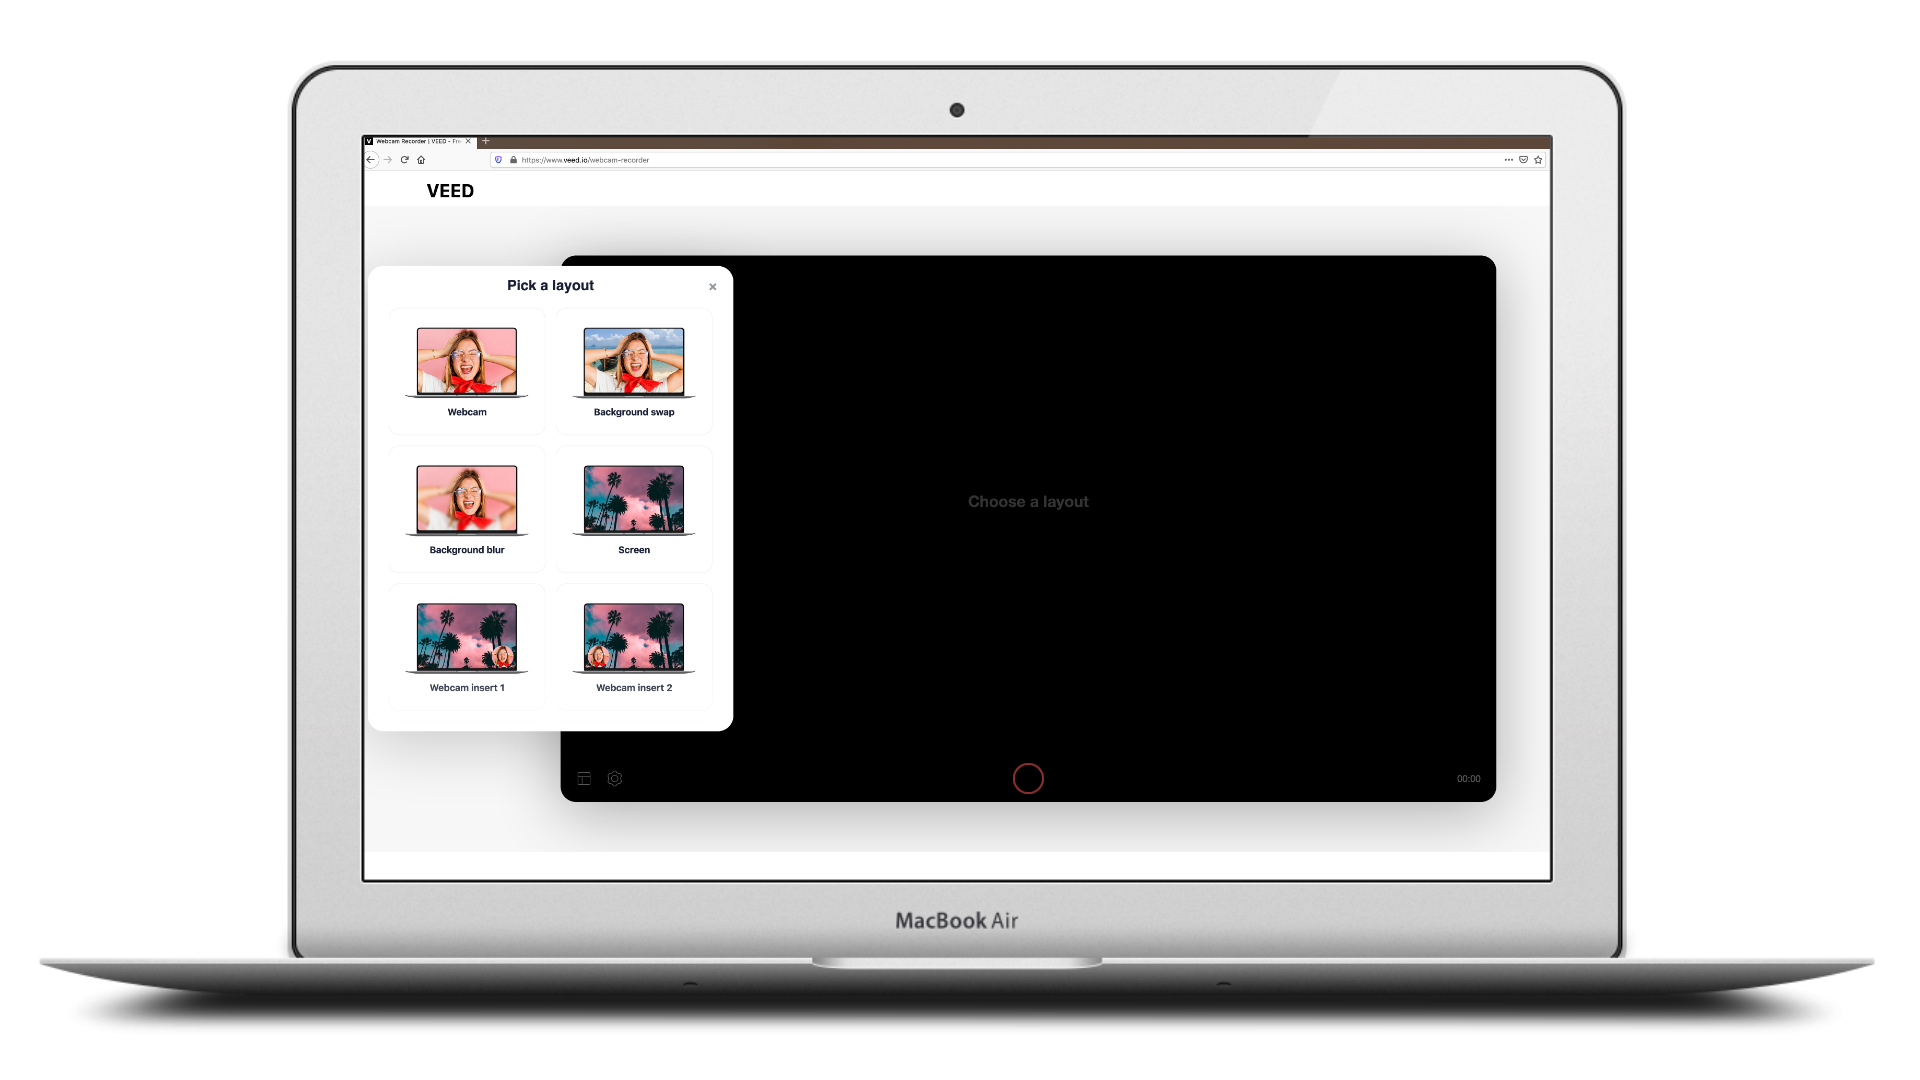 VEED.IO's webcam recording tool and layout options displayed inside of a MacBook Air